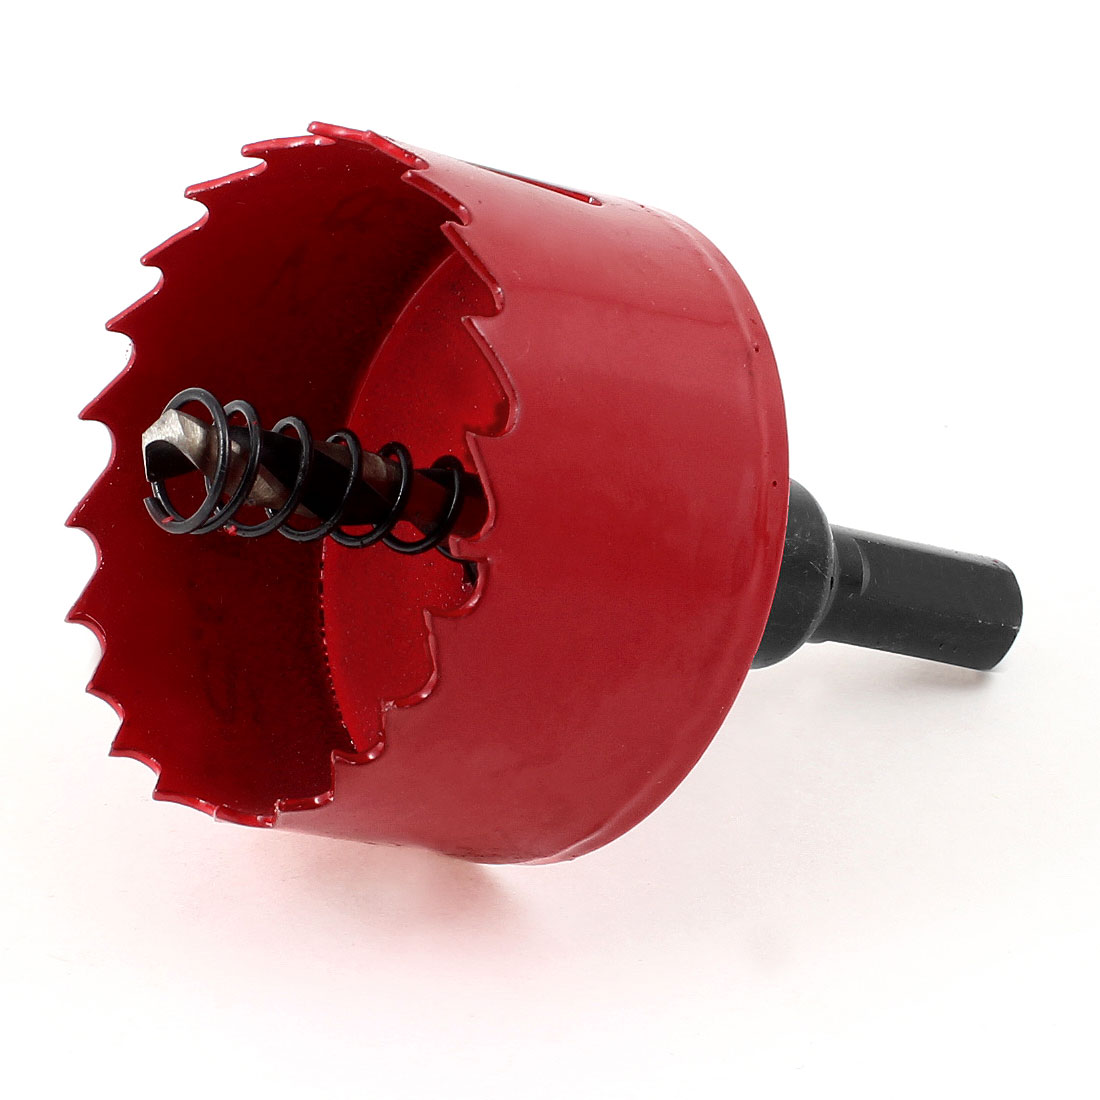 Red Black Twist Drilling Bit 53mm Diameter High Speed Steel Hole Saw Holesaw